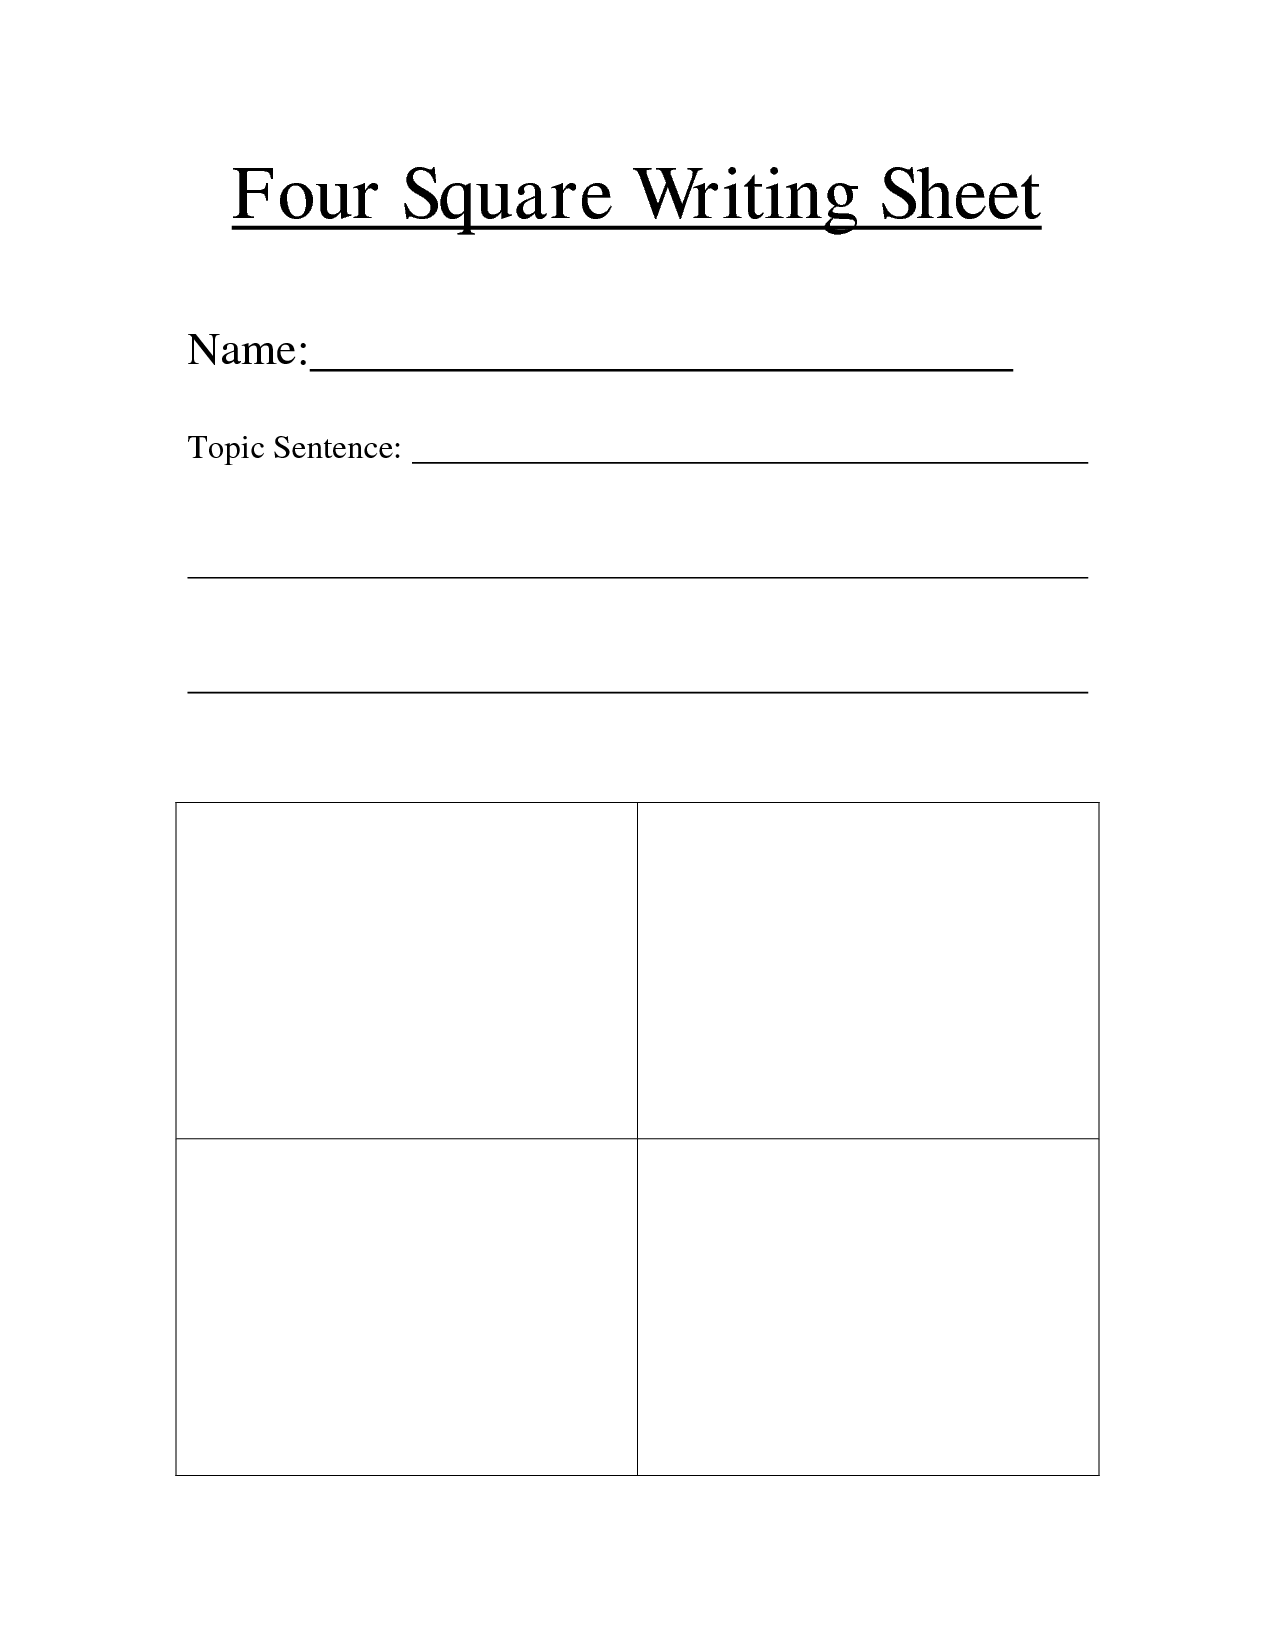 Wild Current Events Worksheet Printable